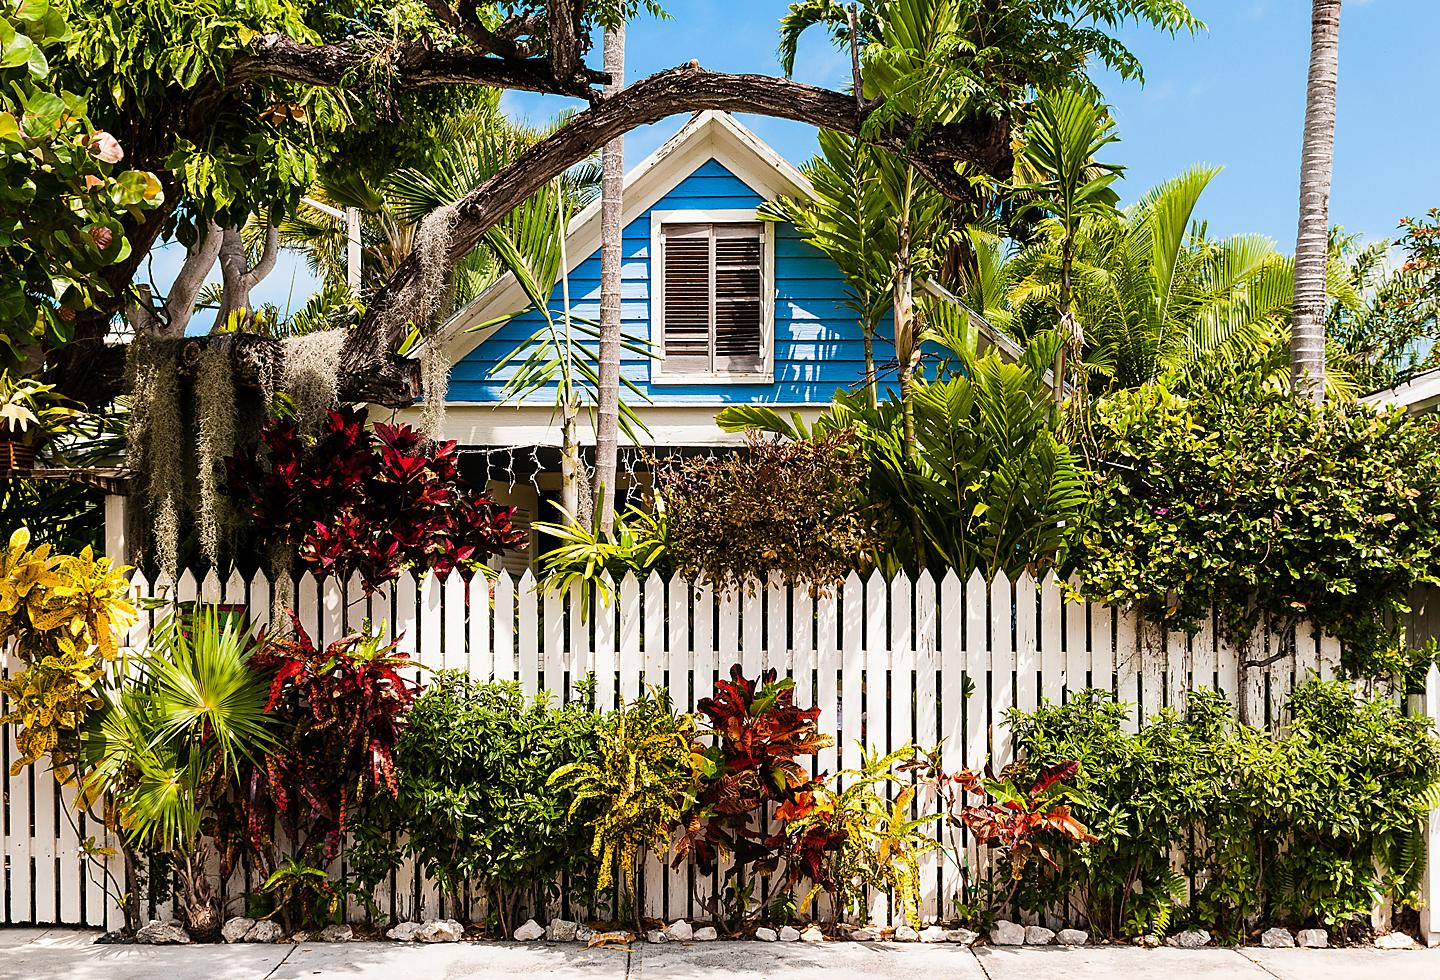 Colorful houses in Key West Florida